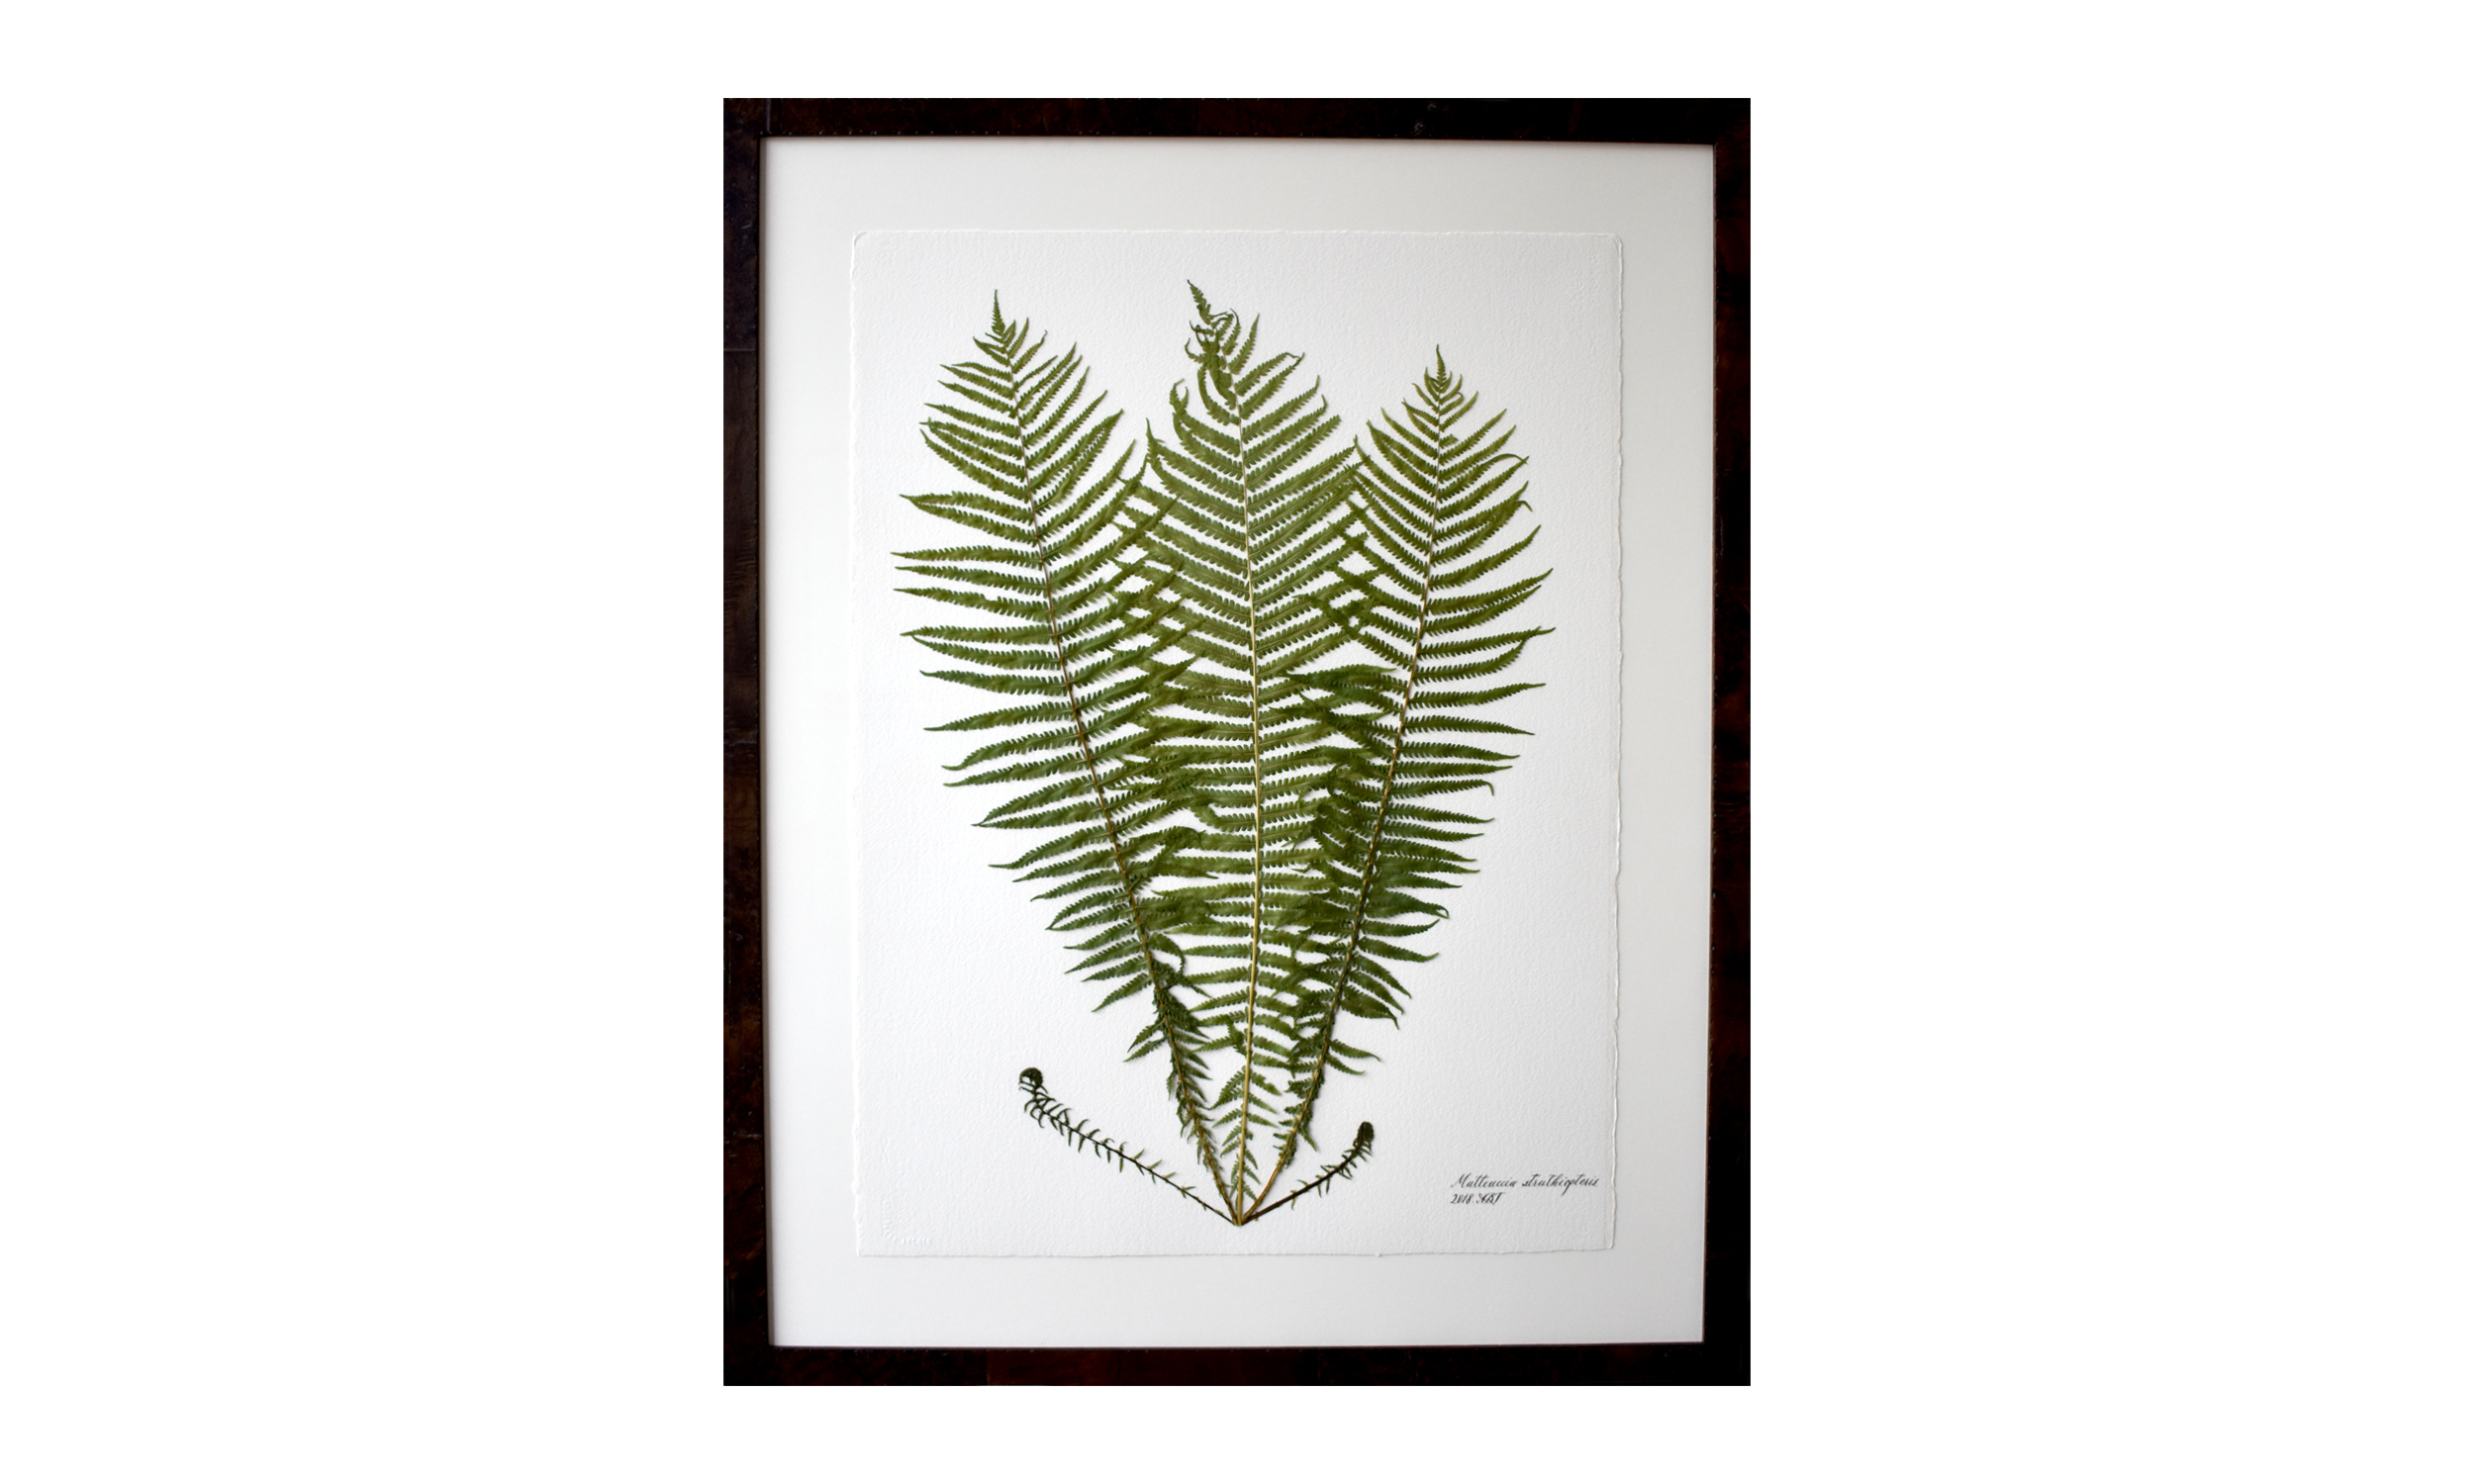 Matteuccis struthiopteris,  30.5 x 37.25 inches, $ 3,100 SOLD